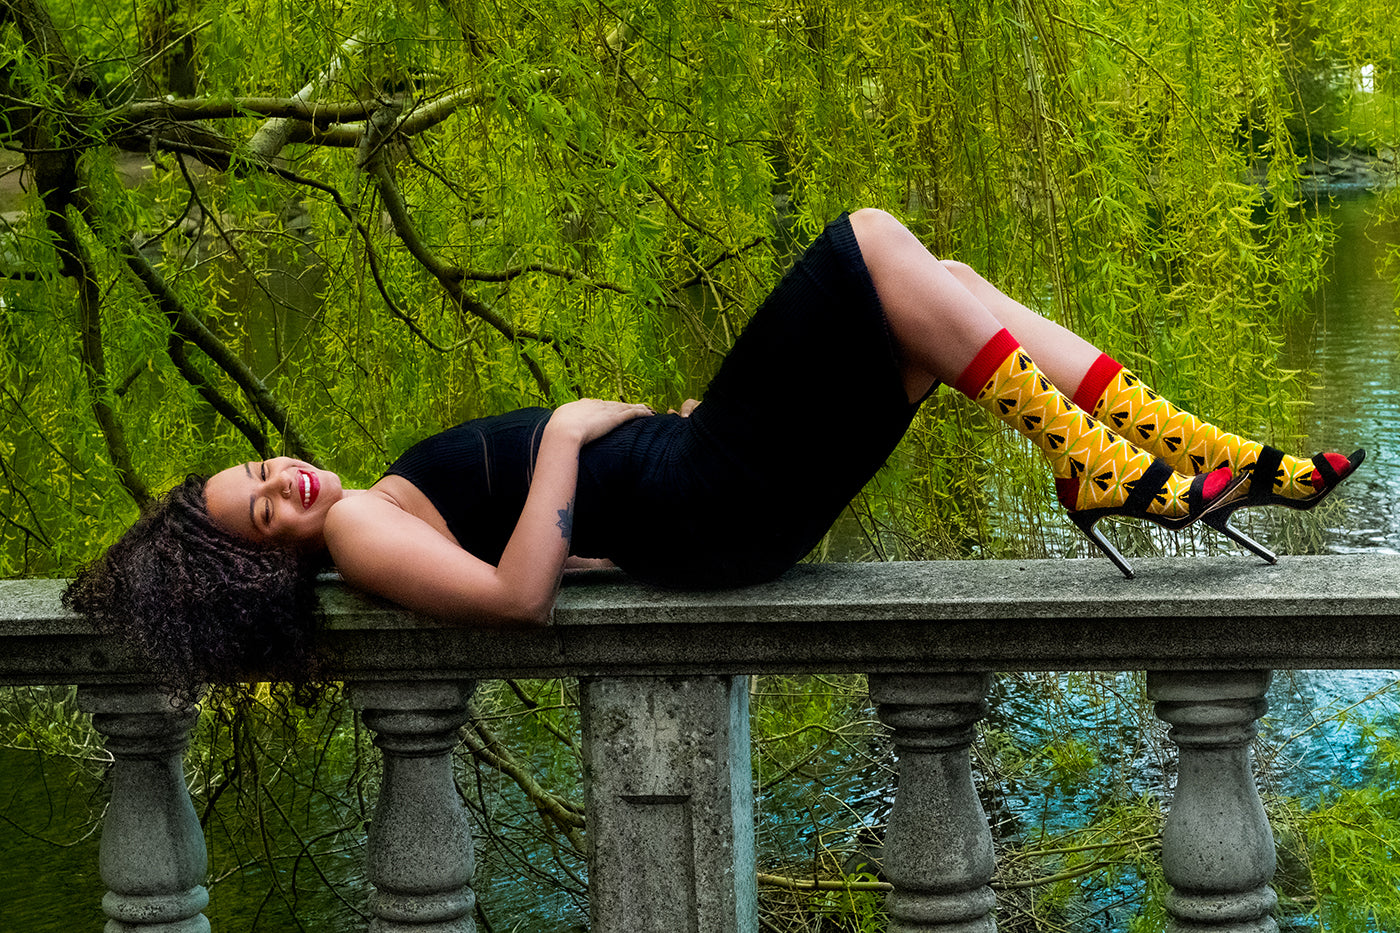 black woman with colorful african dress socks and heels lying down by a lake